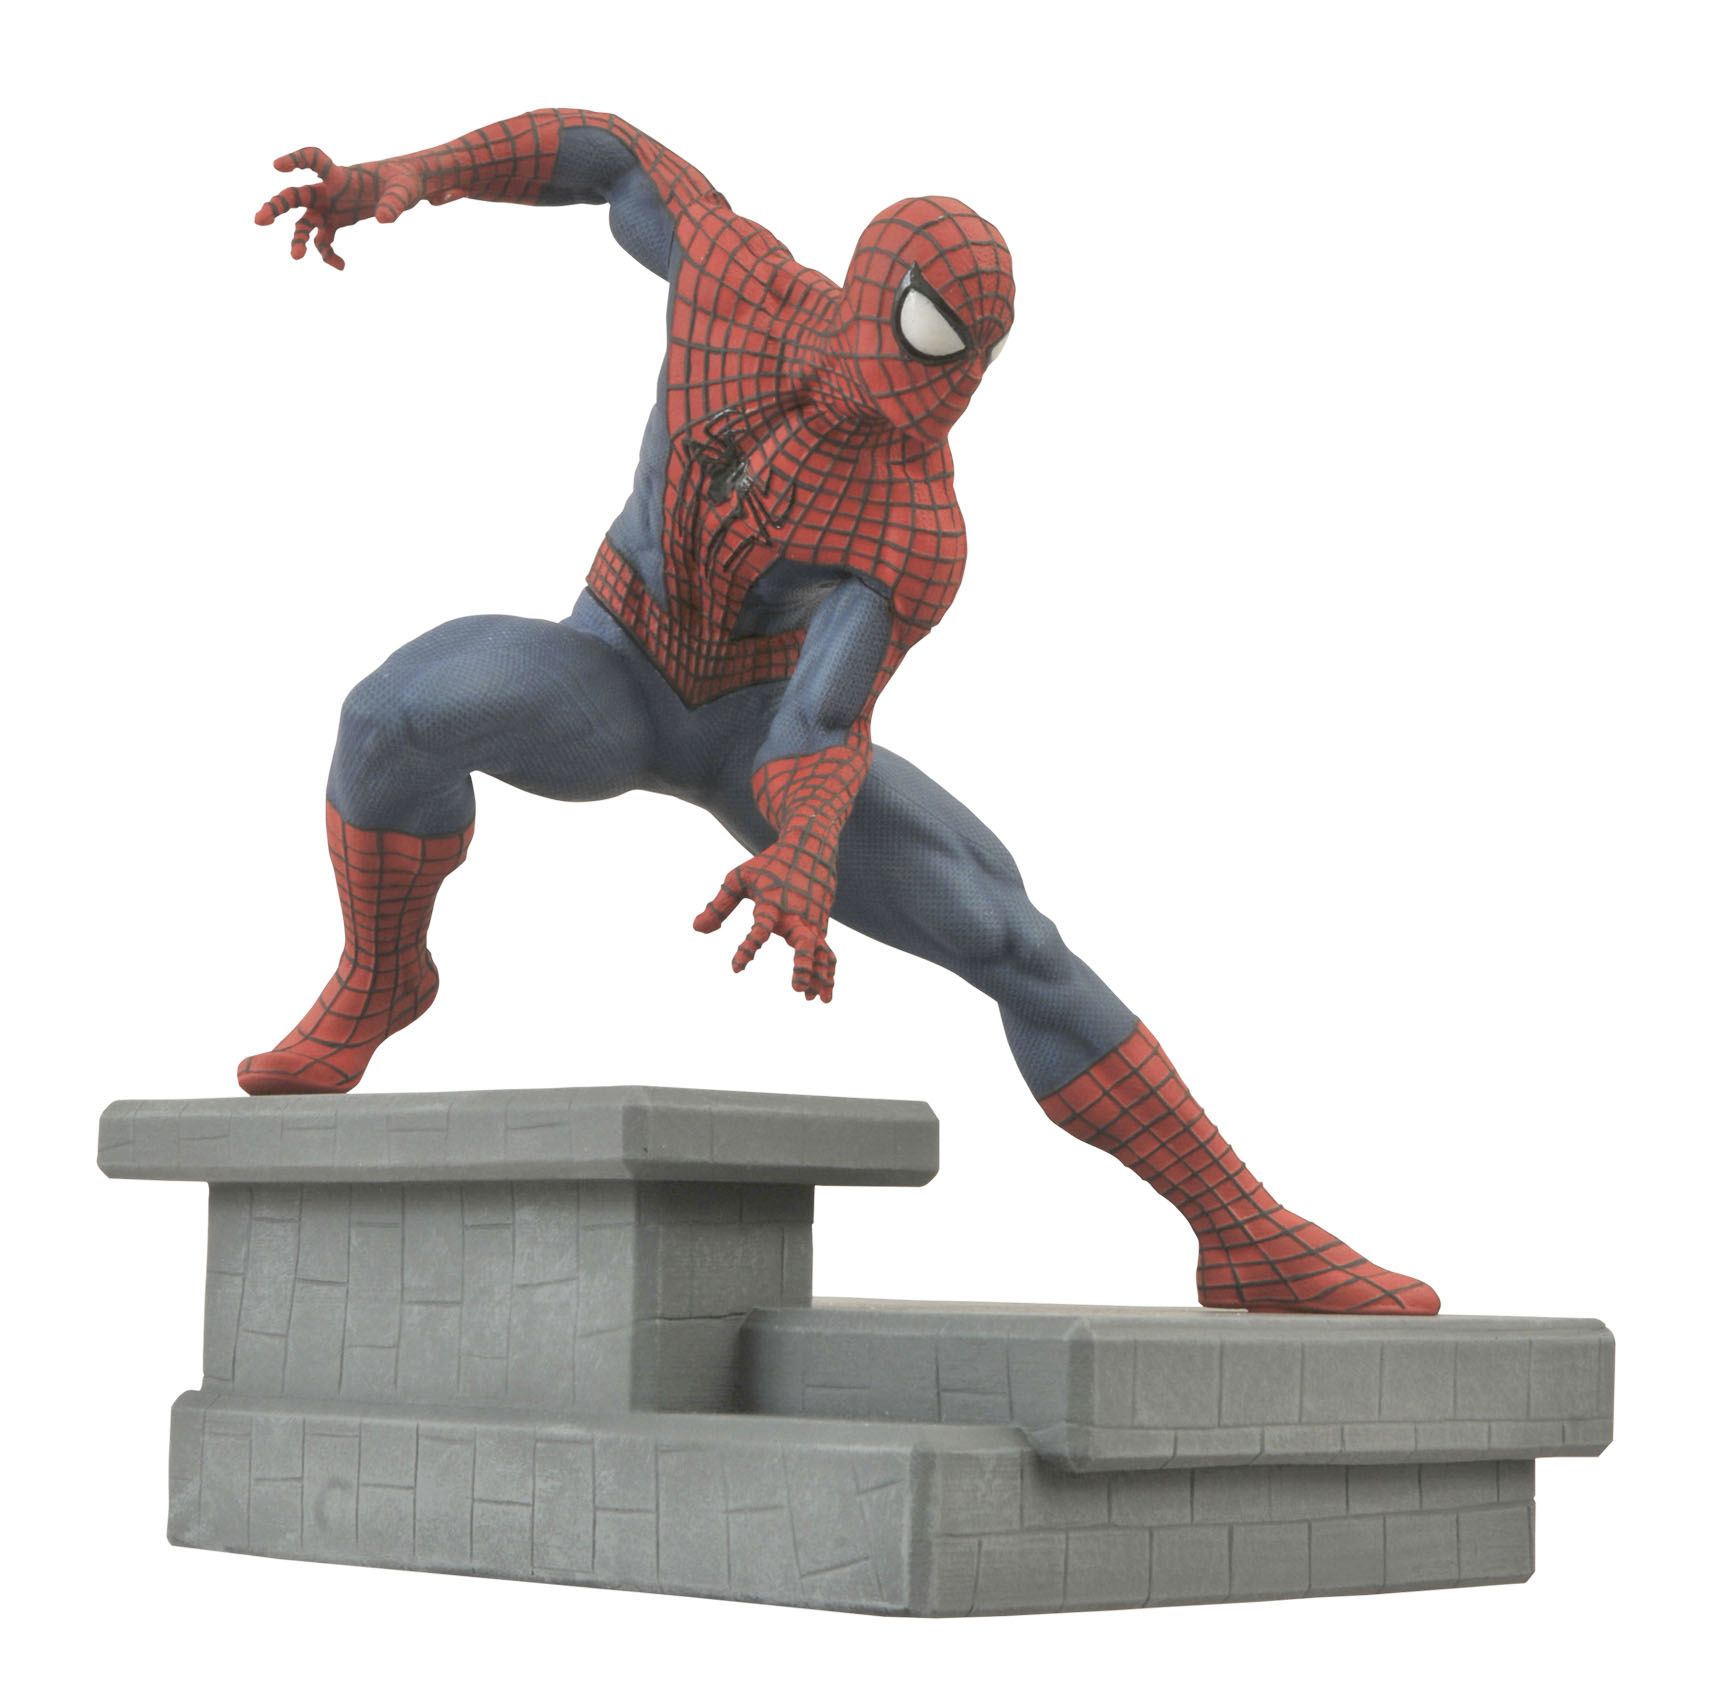 AMAZING SPIDER-MAN 2 MOVIE STATUE